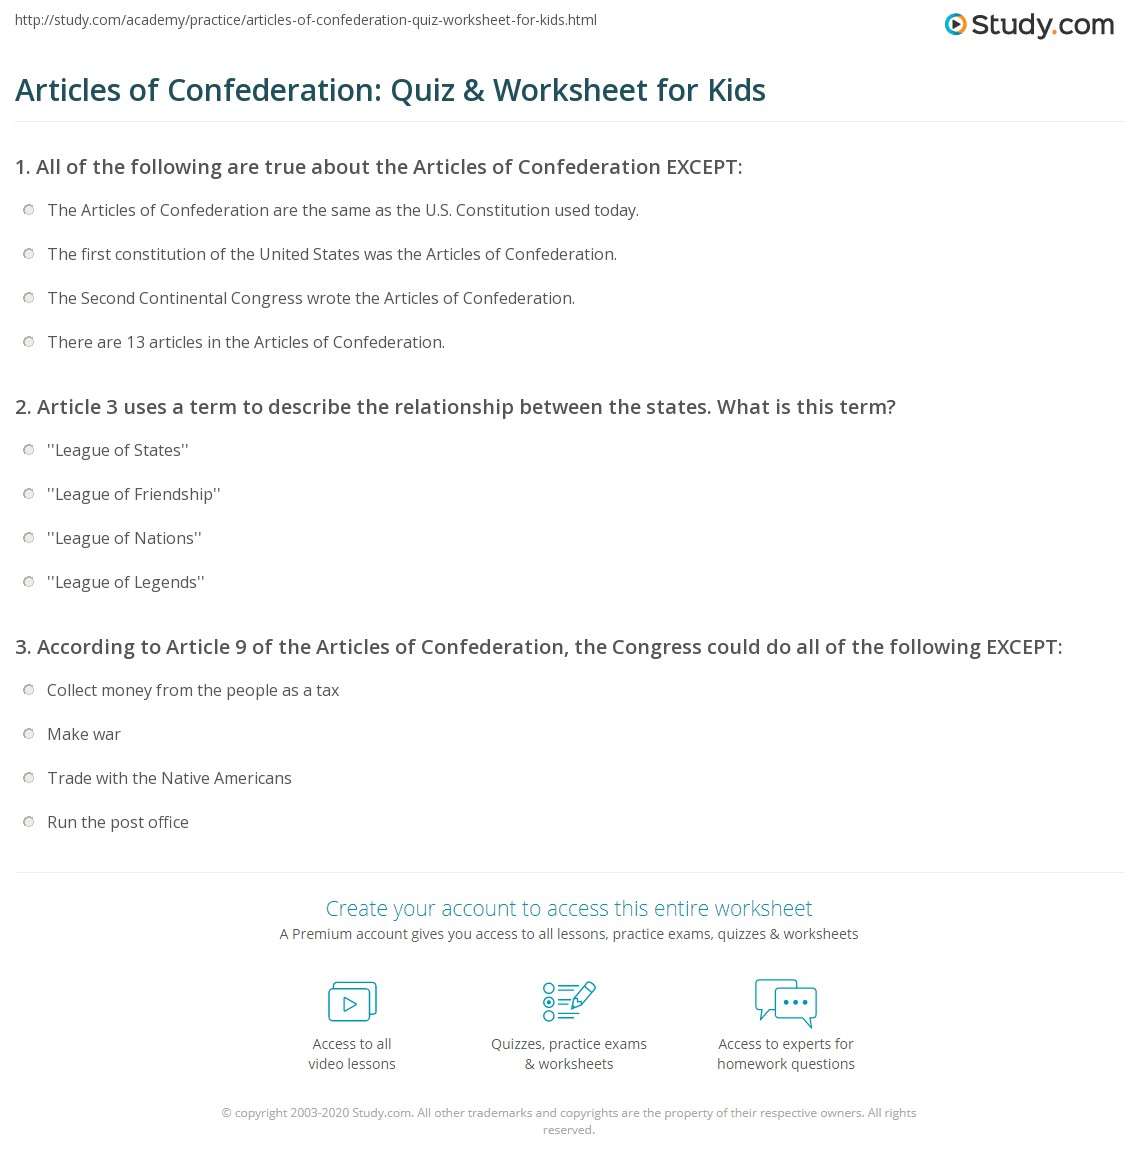 Articles of Confederation: Quiz & Worksheet for Kids | Study.com